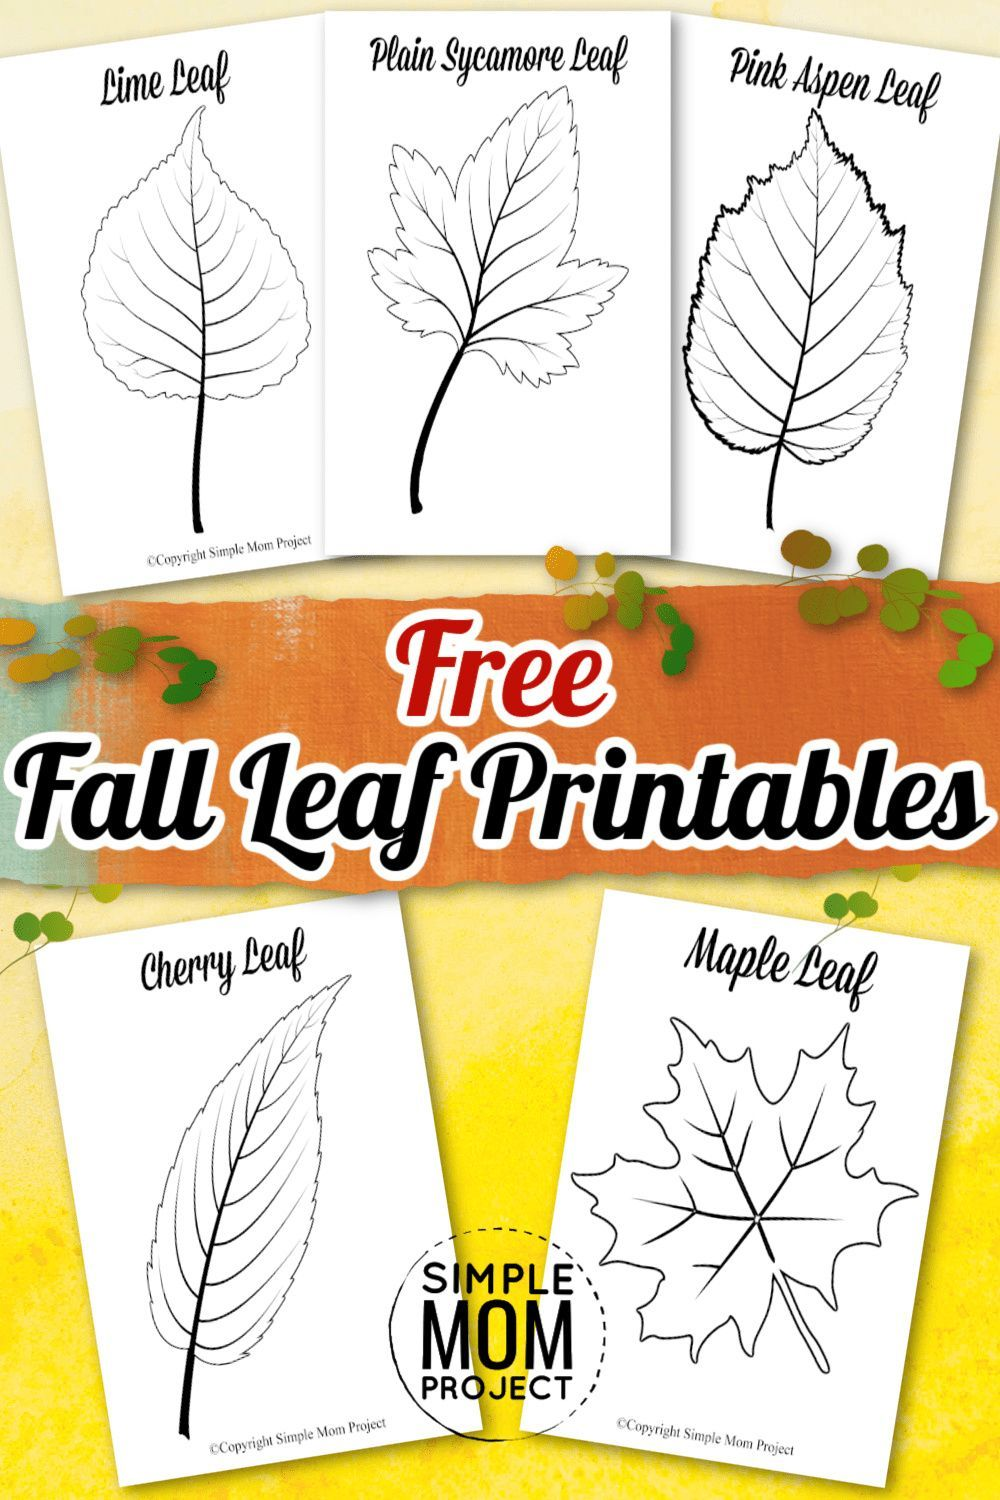 free printable large leaf templates stencils and patterns simple mom project in 2020 leaf template fall leaf template fall coloring sheets pinterest